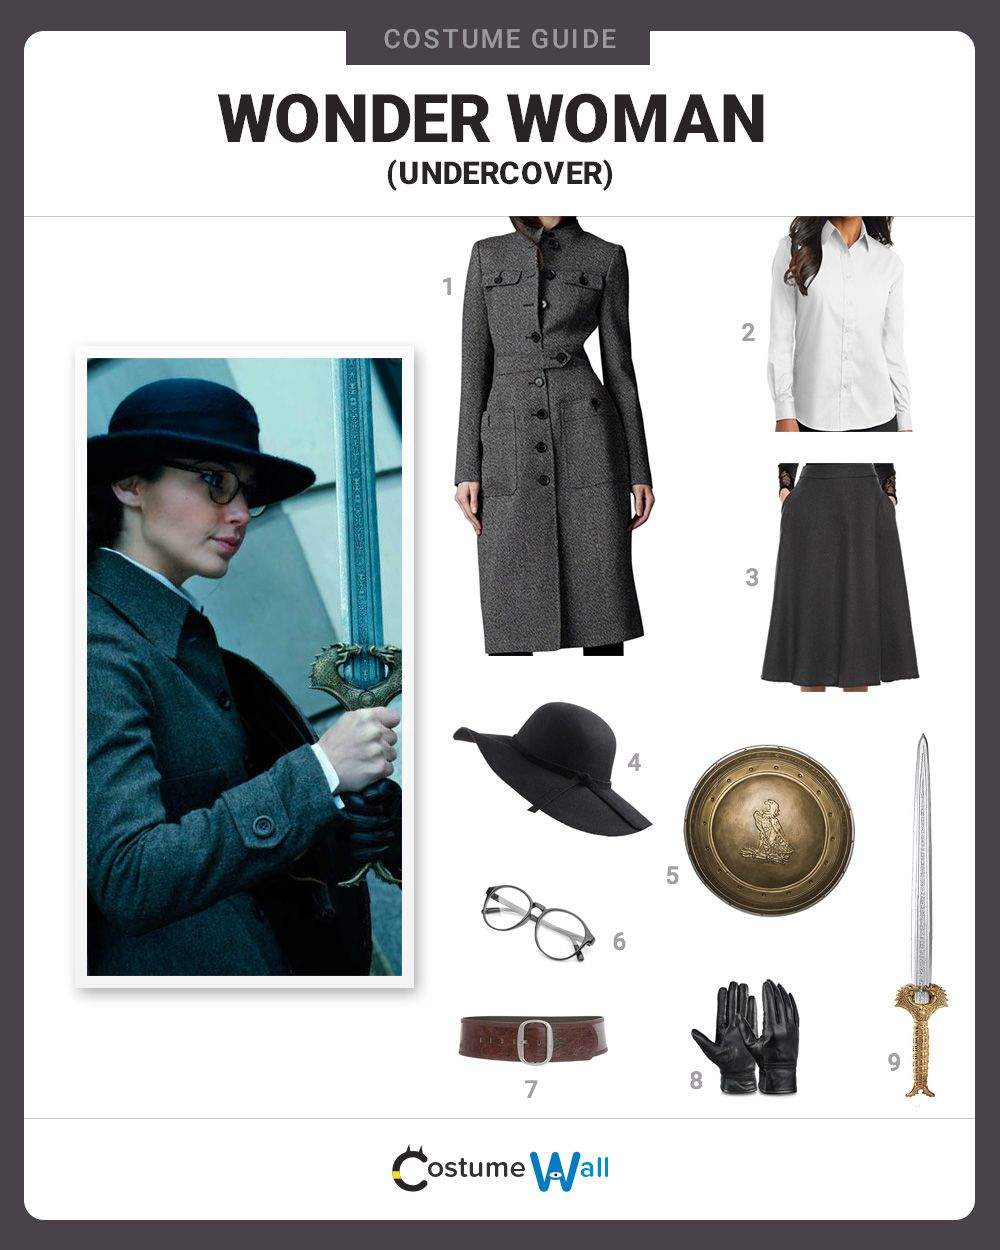 4ab3f192cff6 Get the best costume guide for dressing up like the undercover Wonder Woman,  who looks more conservative in the 2017 movie, Wonder Woman.